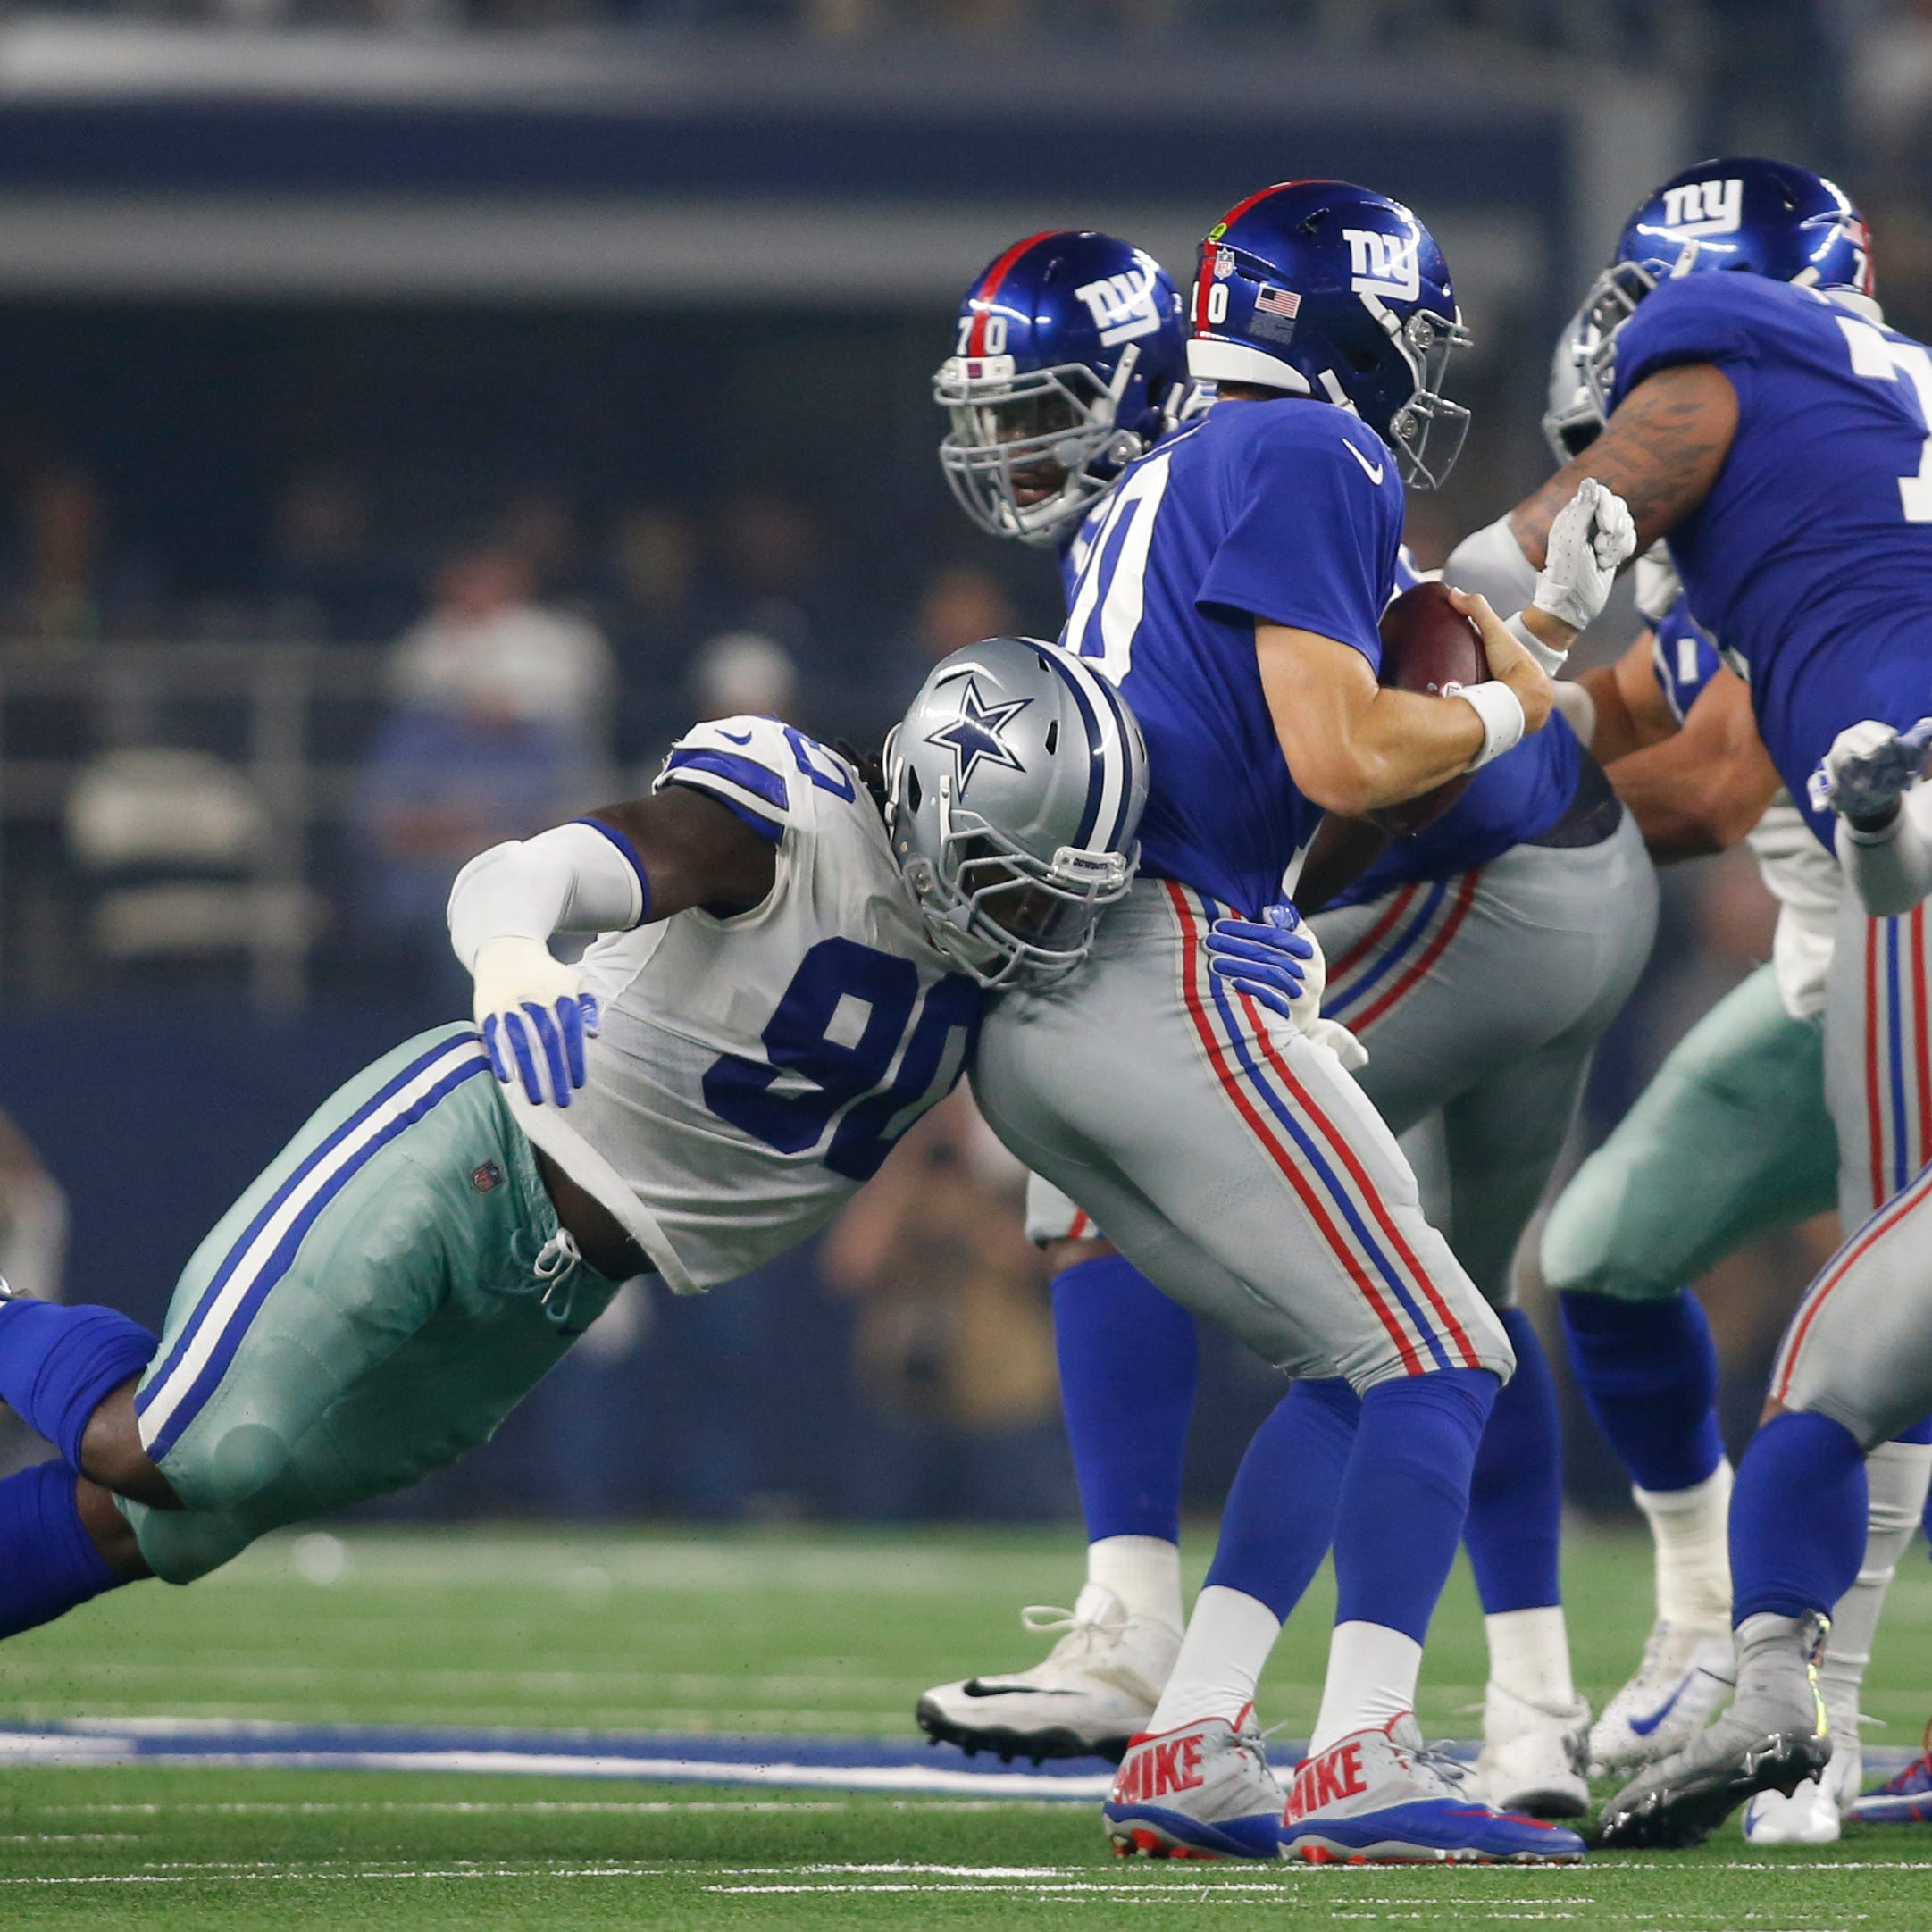 Dallas Cowboys 20, NY Giants 13: Offense grinds its gears, comes up empty in pathetic loss